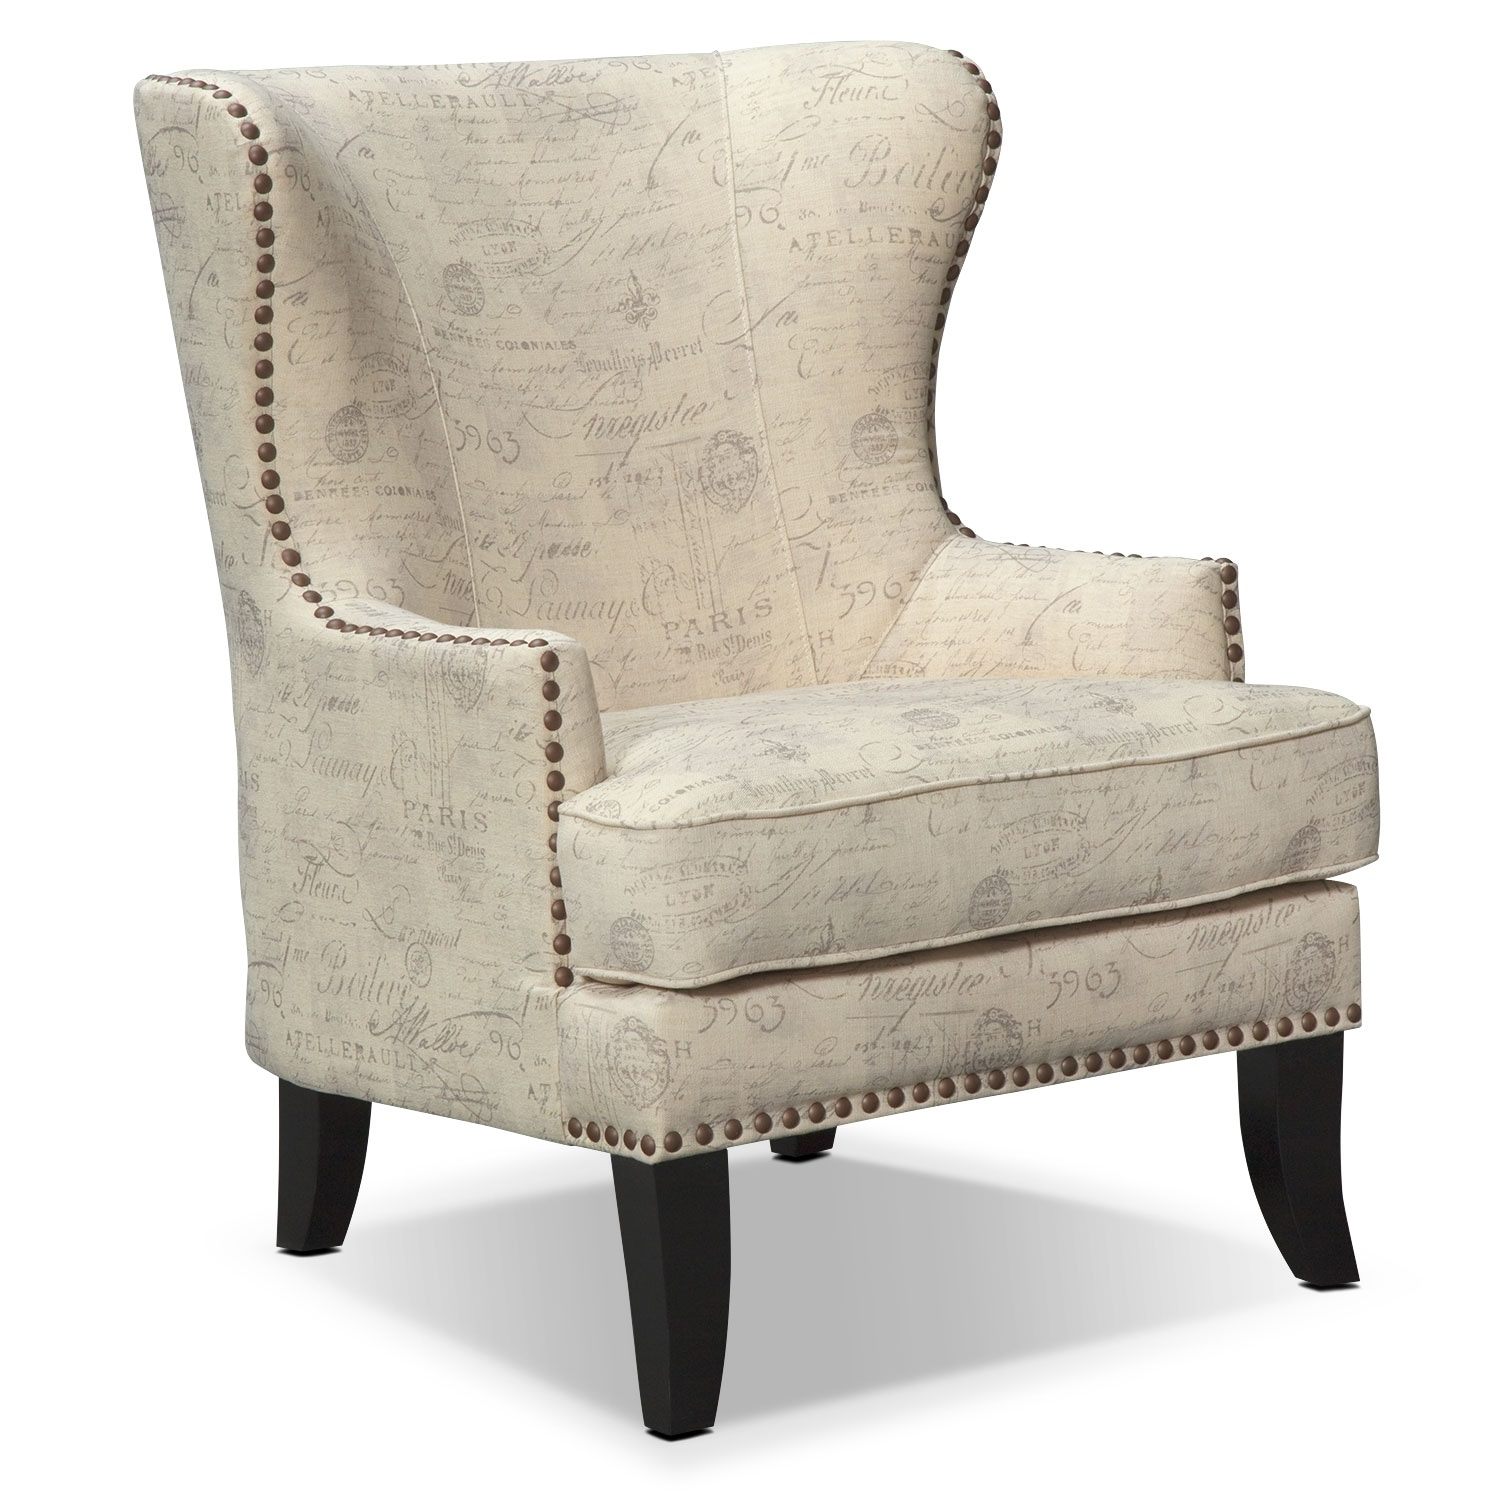 Wonderful Marseille Accent Chair   Cream And Black